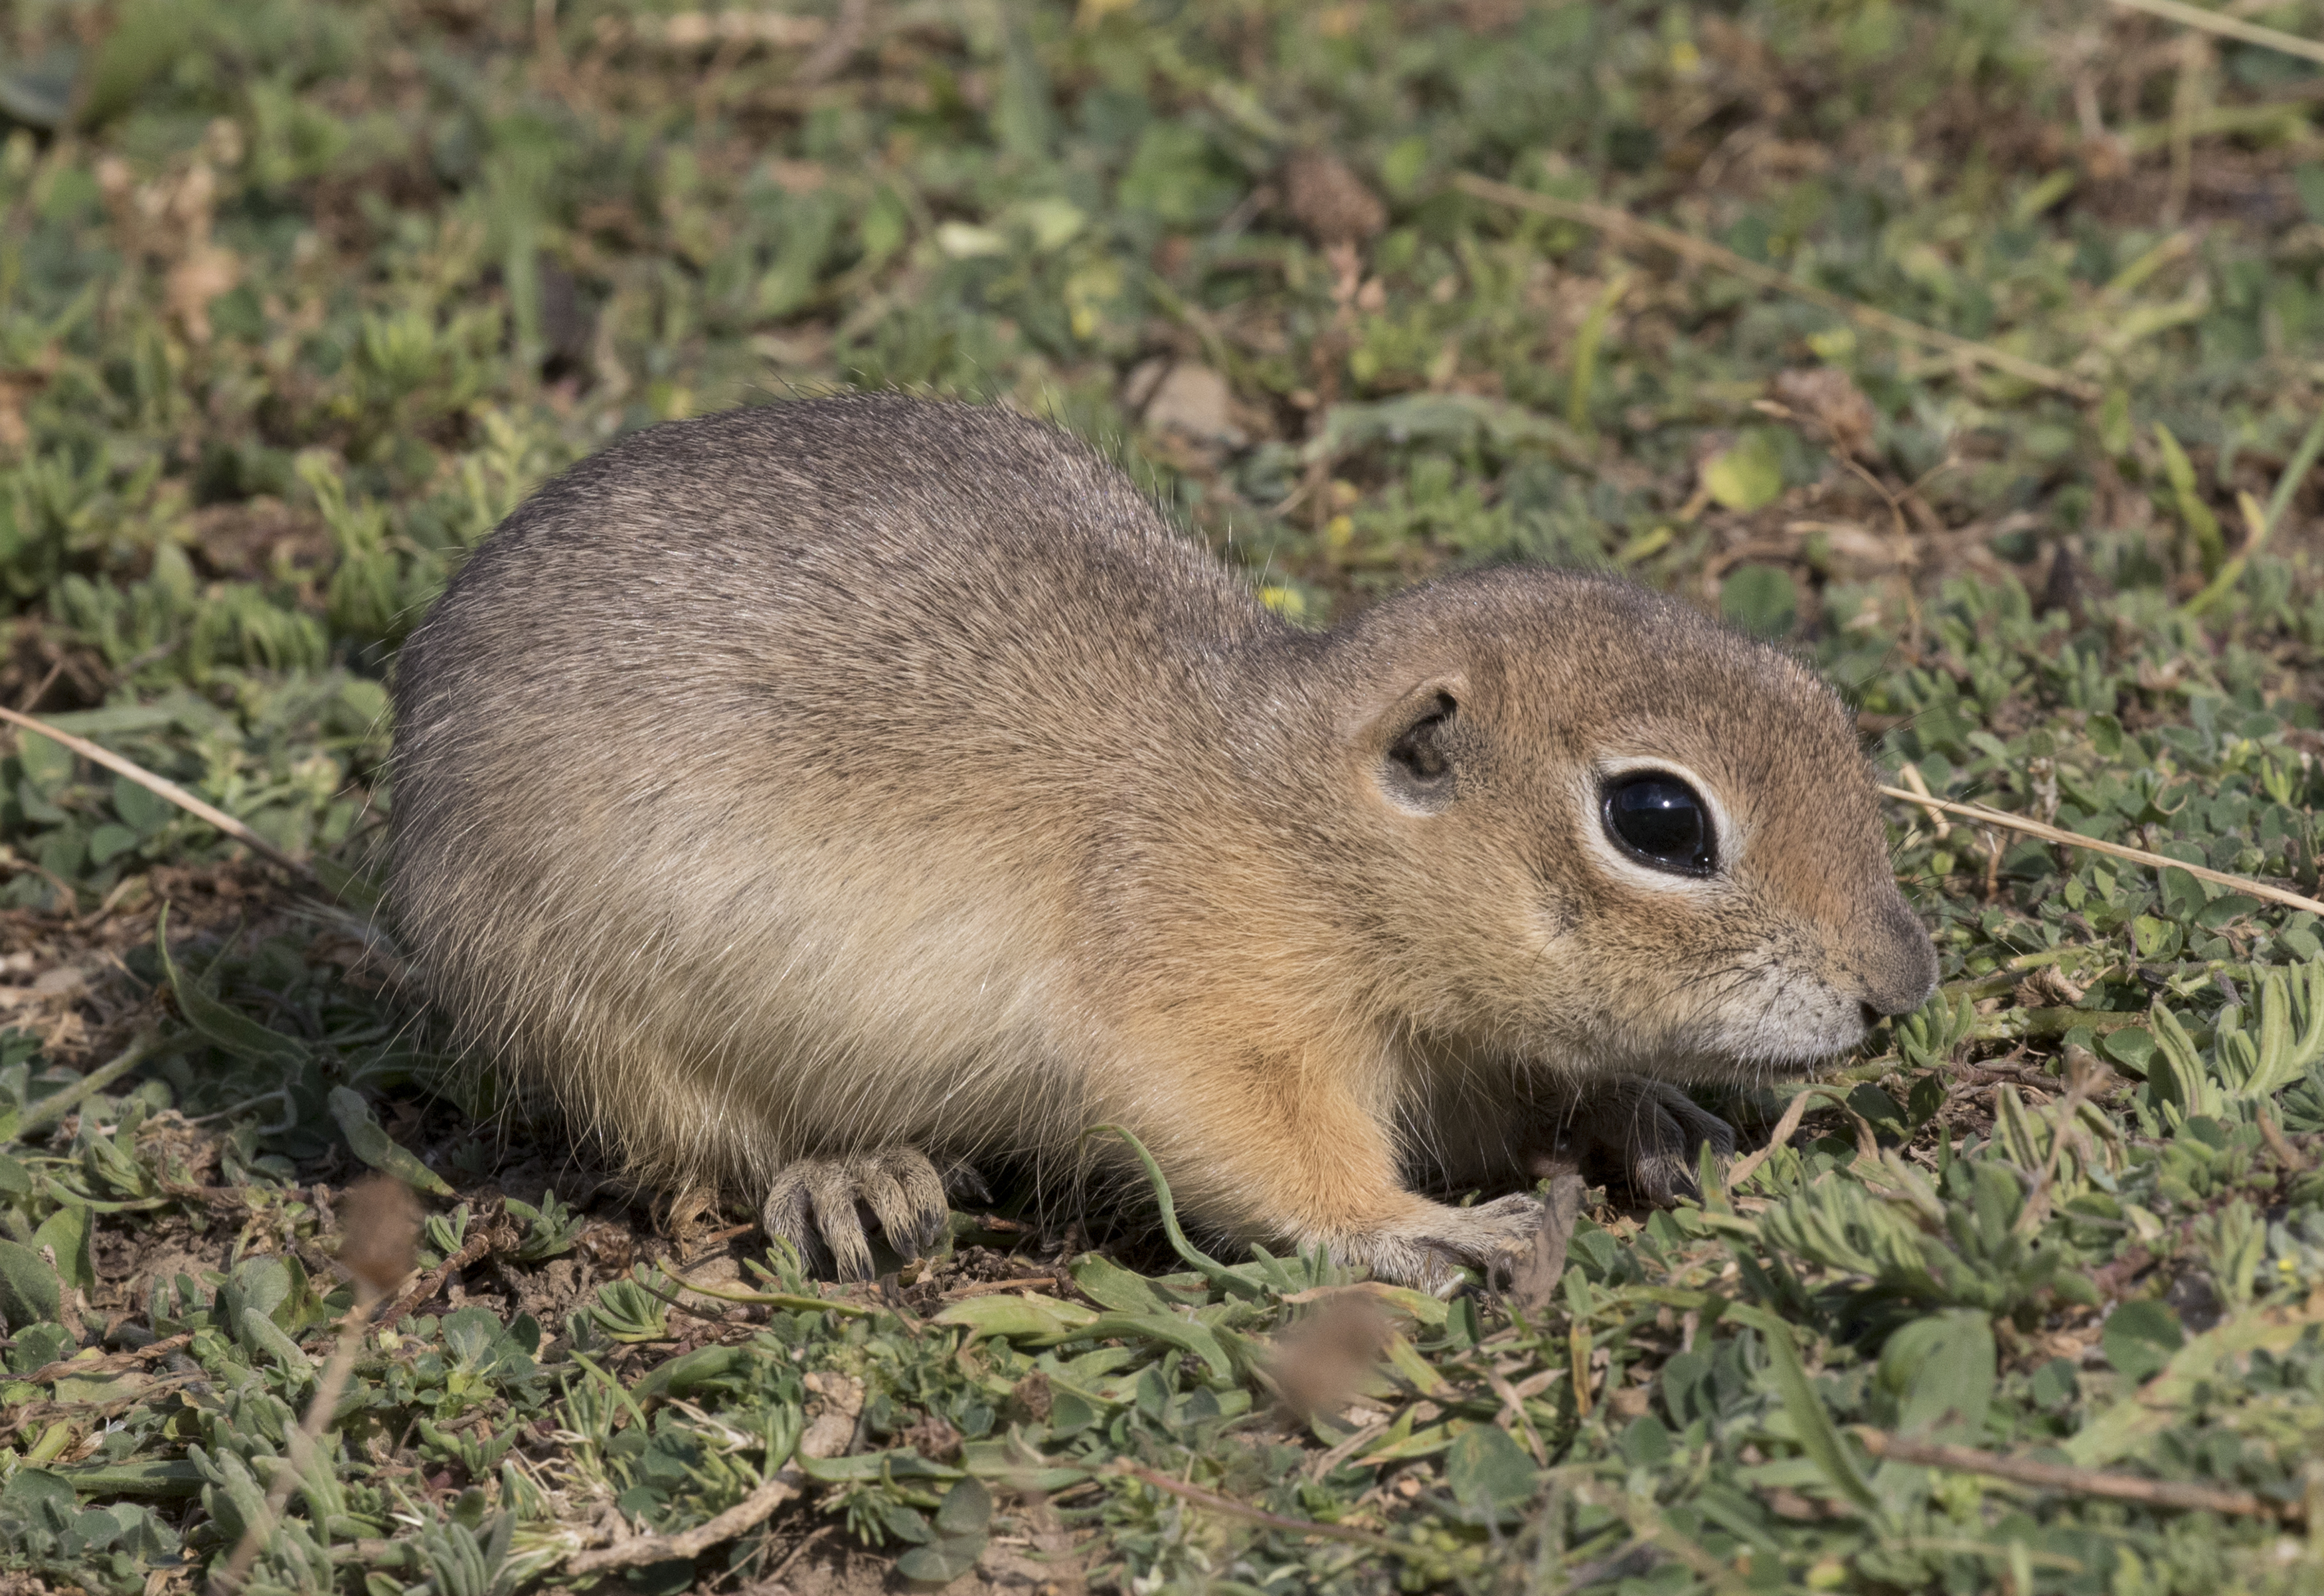 Image of Anatolian ground squirrel